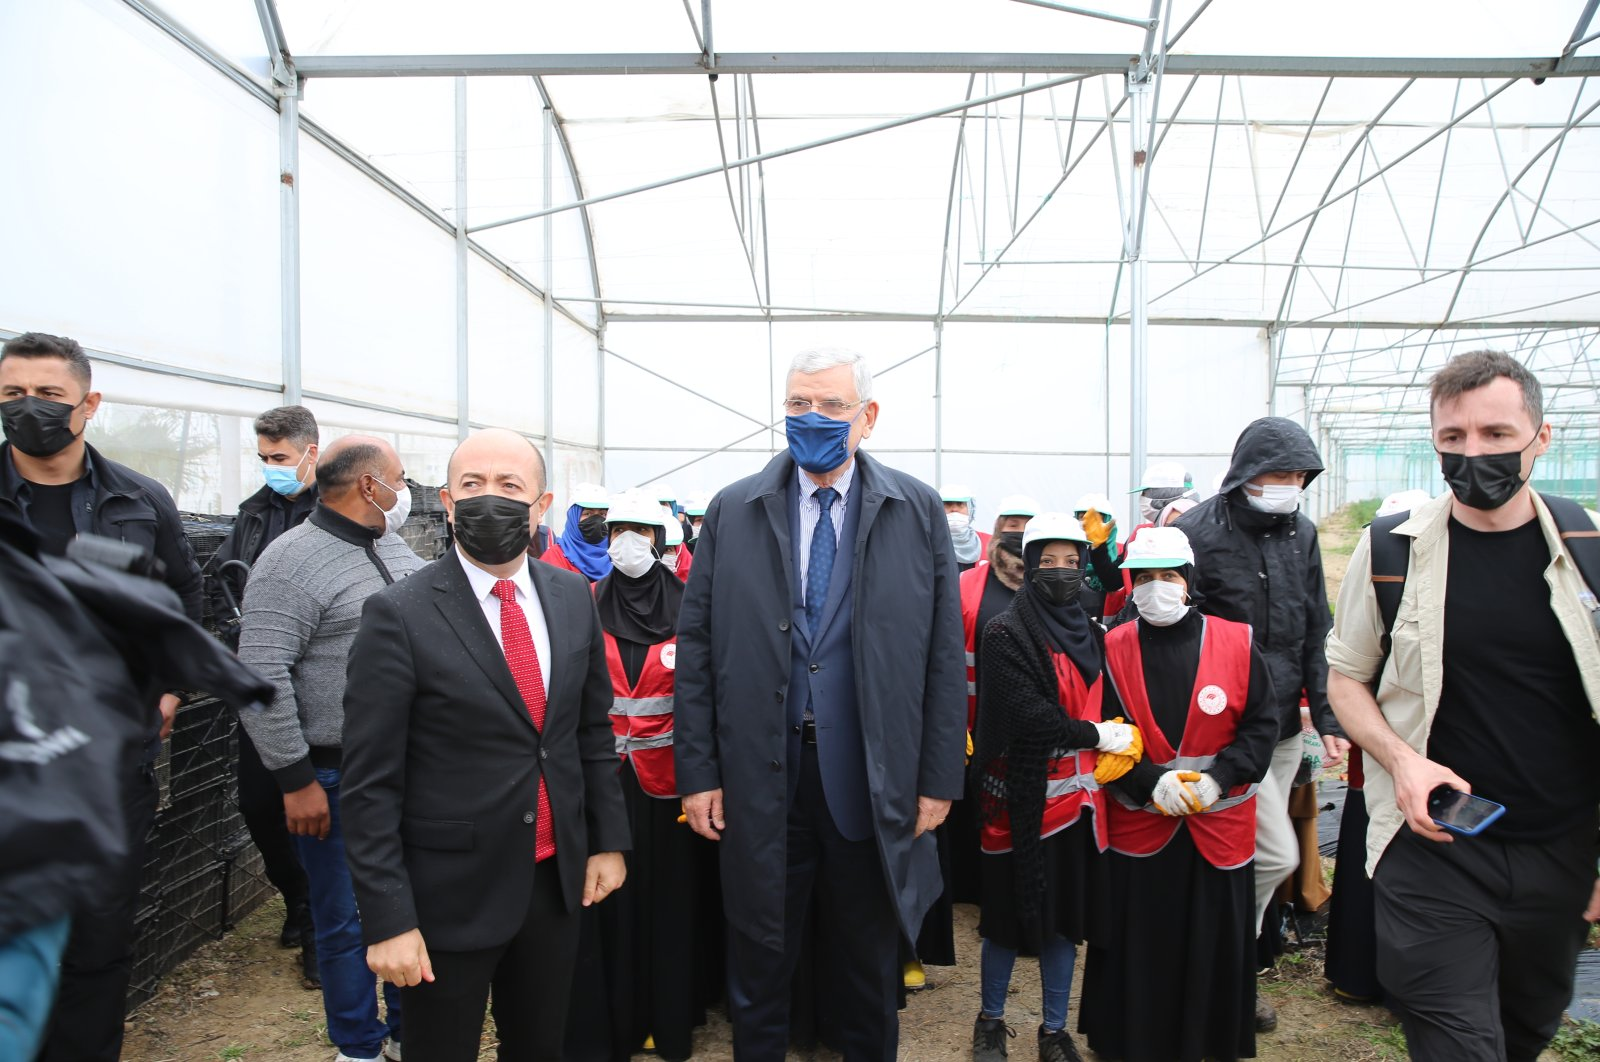 The Turkish diplomat heading the United Nations General Assembly, Volkan Bozkır (C), visits the Boynuyoğun Temporary Refuge Center in the Altınozu district of Hatay province, Turkey, April 10, 2021. (AA)